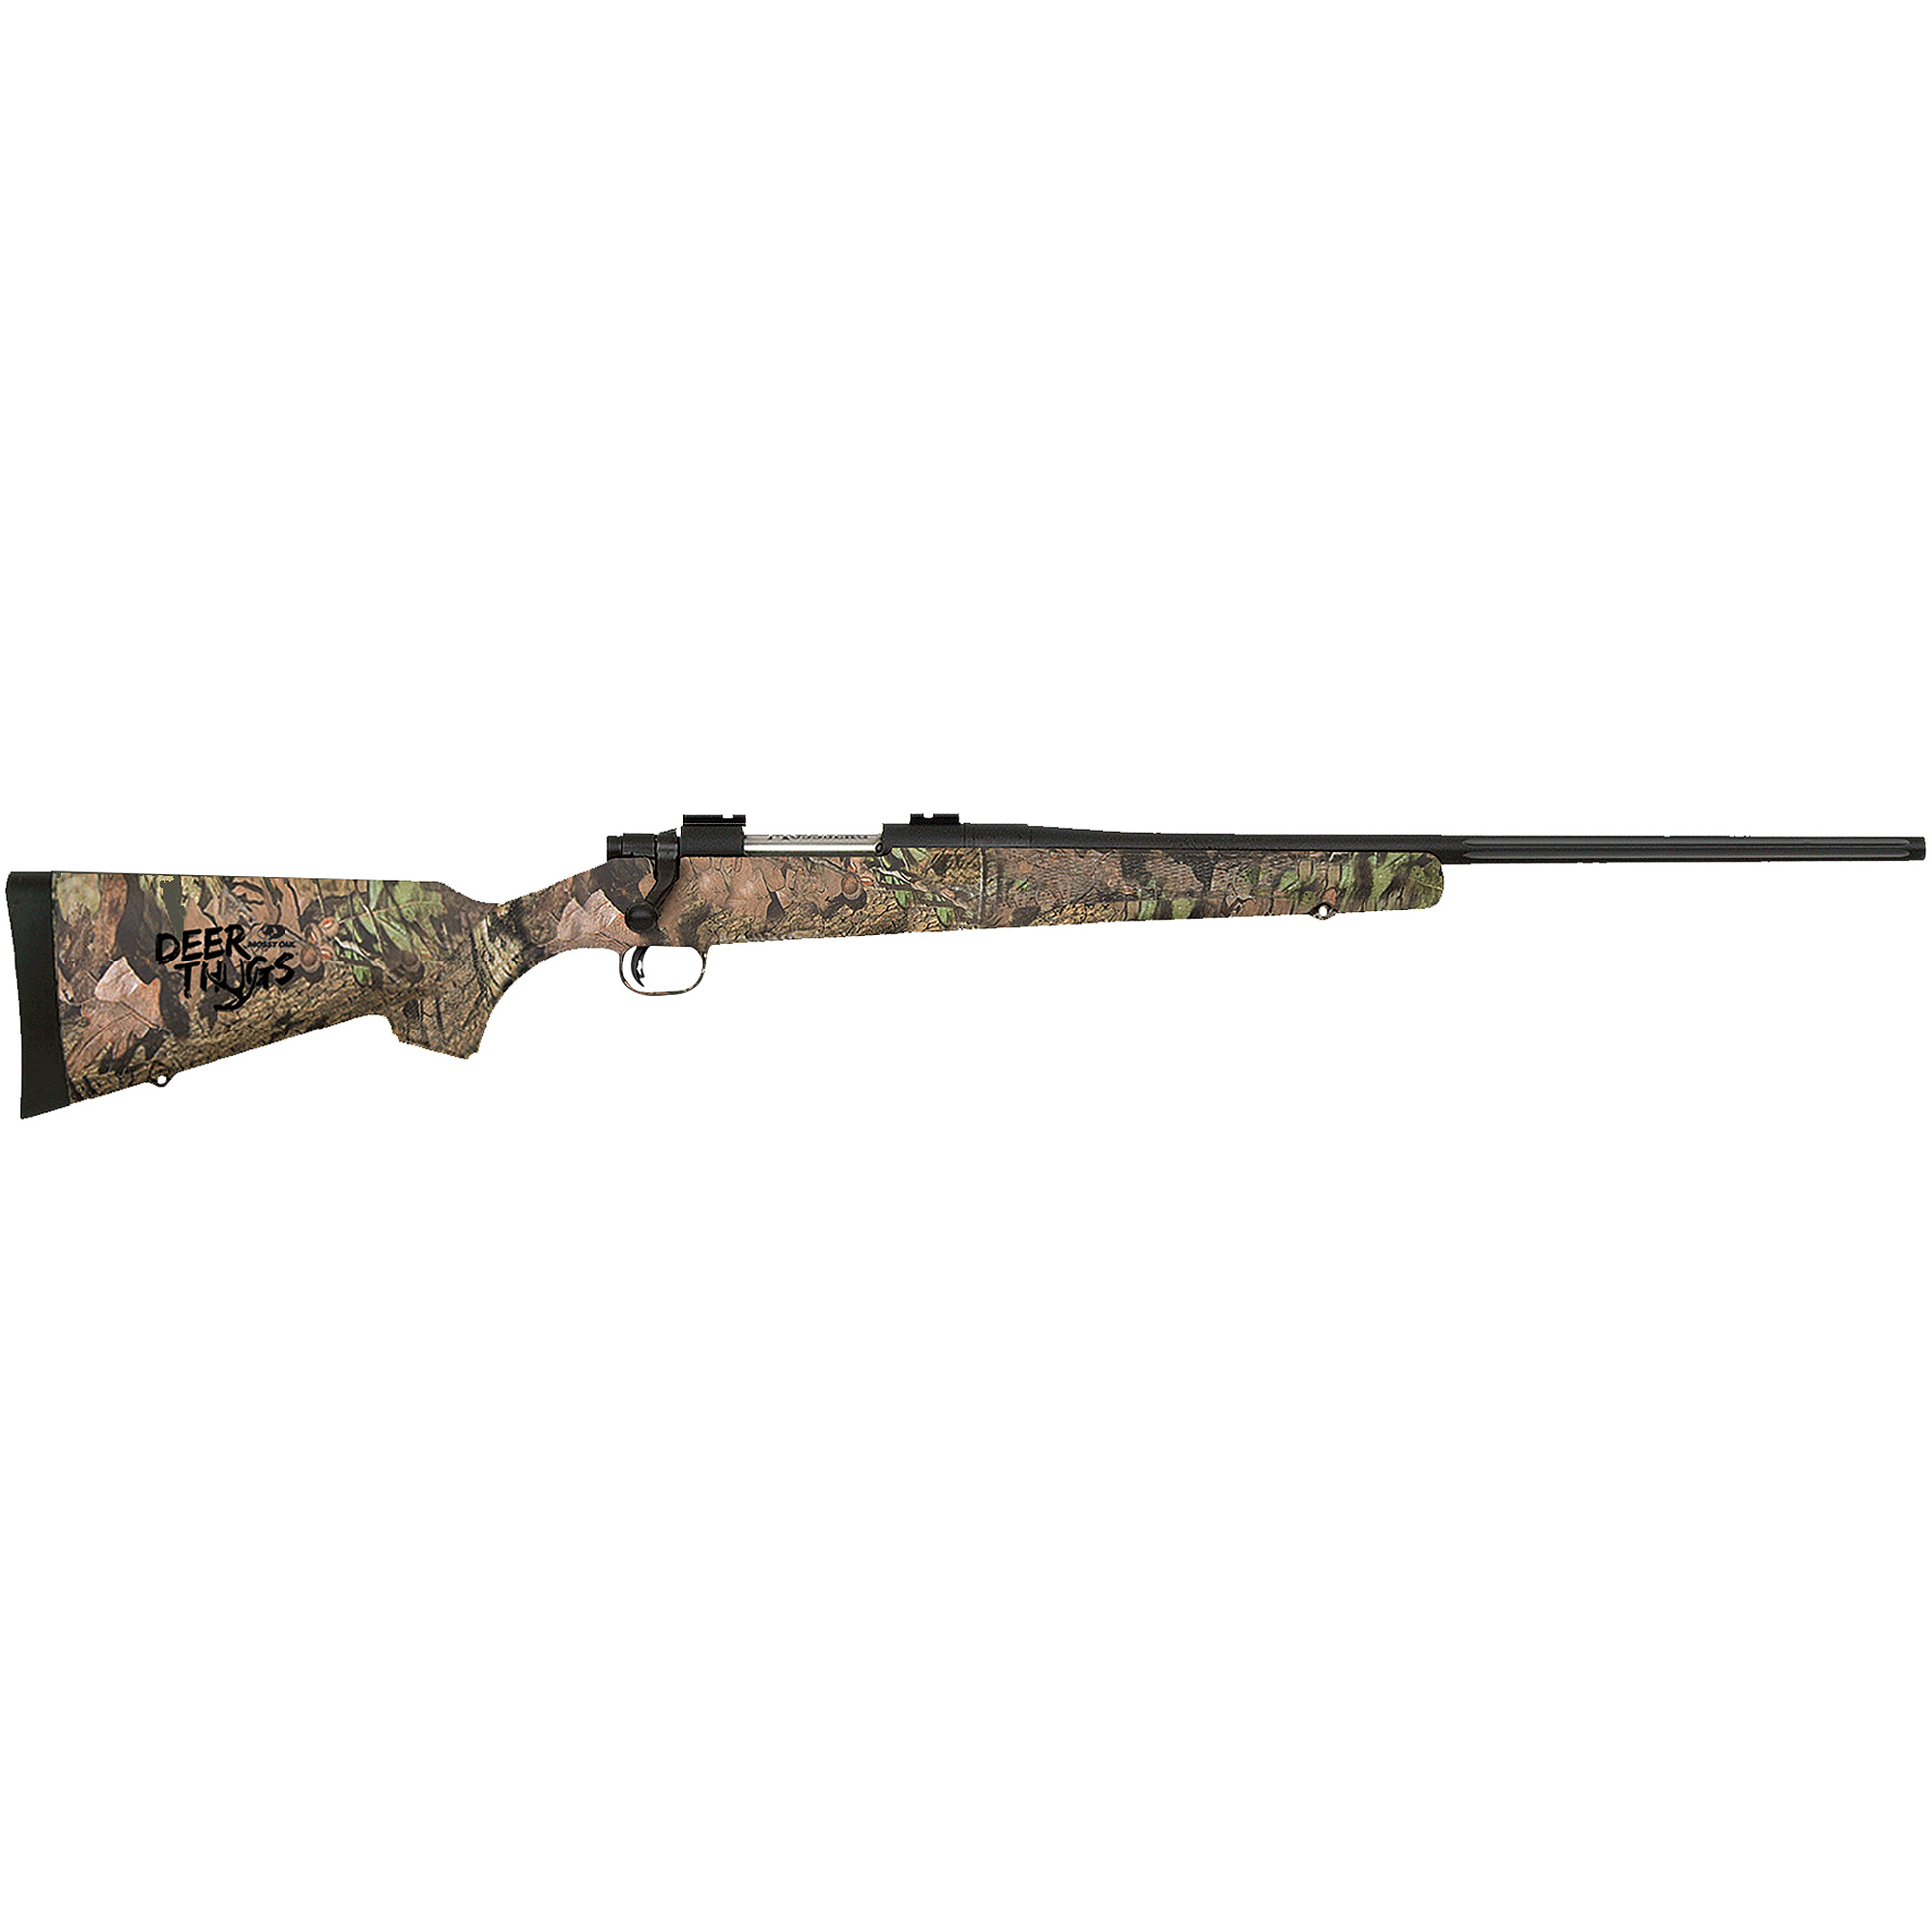 "DO NOT PUBLISH Mossberg 27178 100 Bolt .30-06 Springfield 22"", Mossy Oak Break-Up Infinity, Composite"